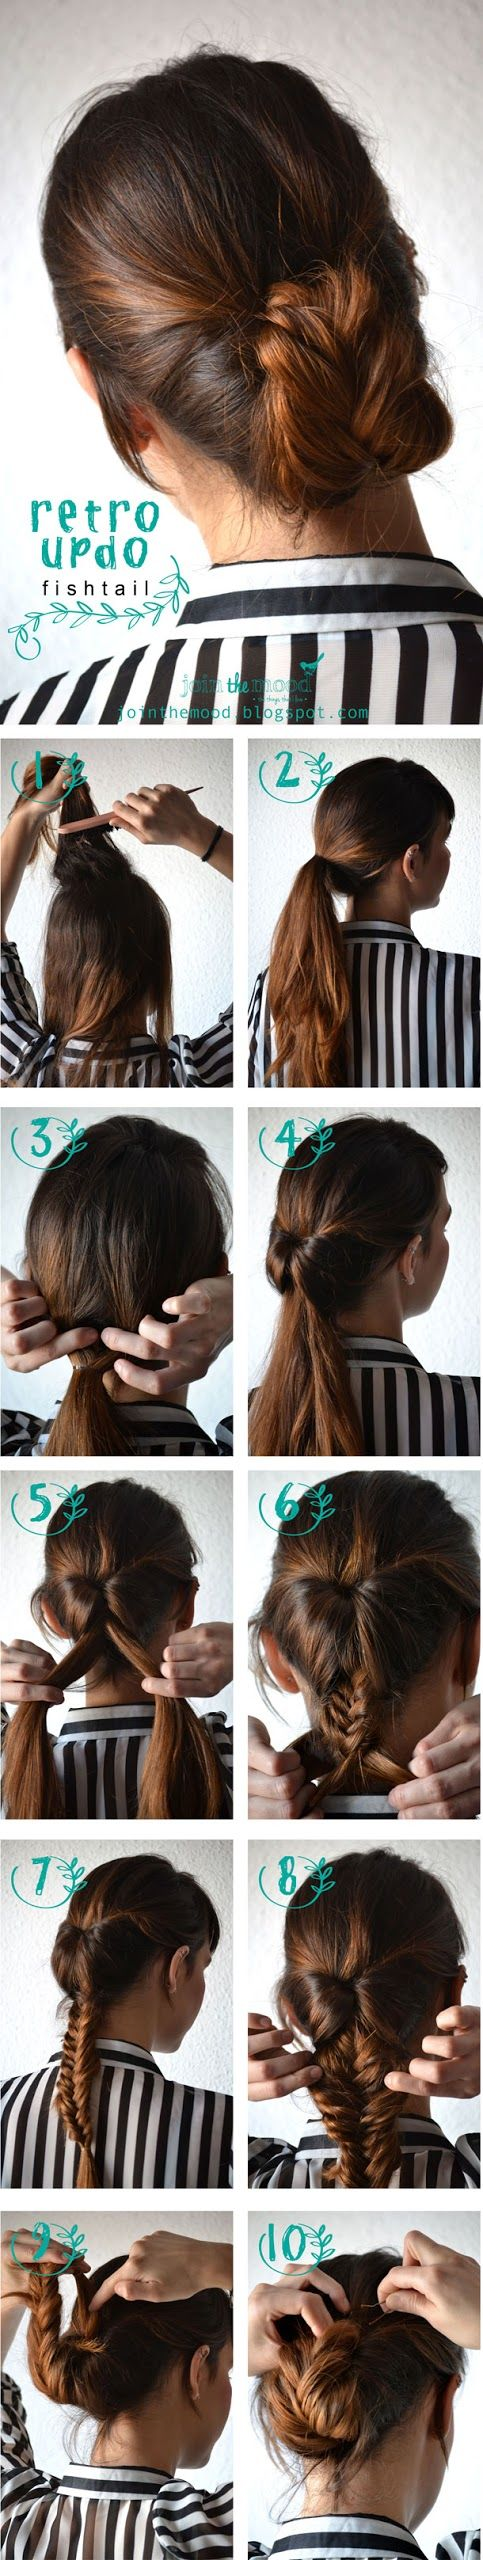 easy noheat hairstyles for dirty hair retro updo fishtail and